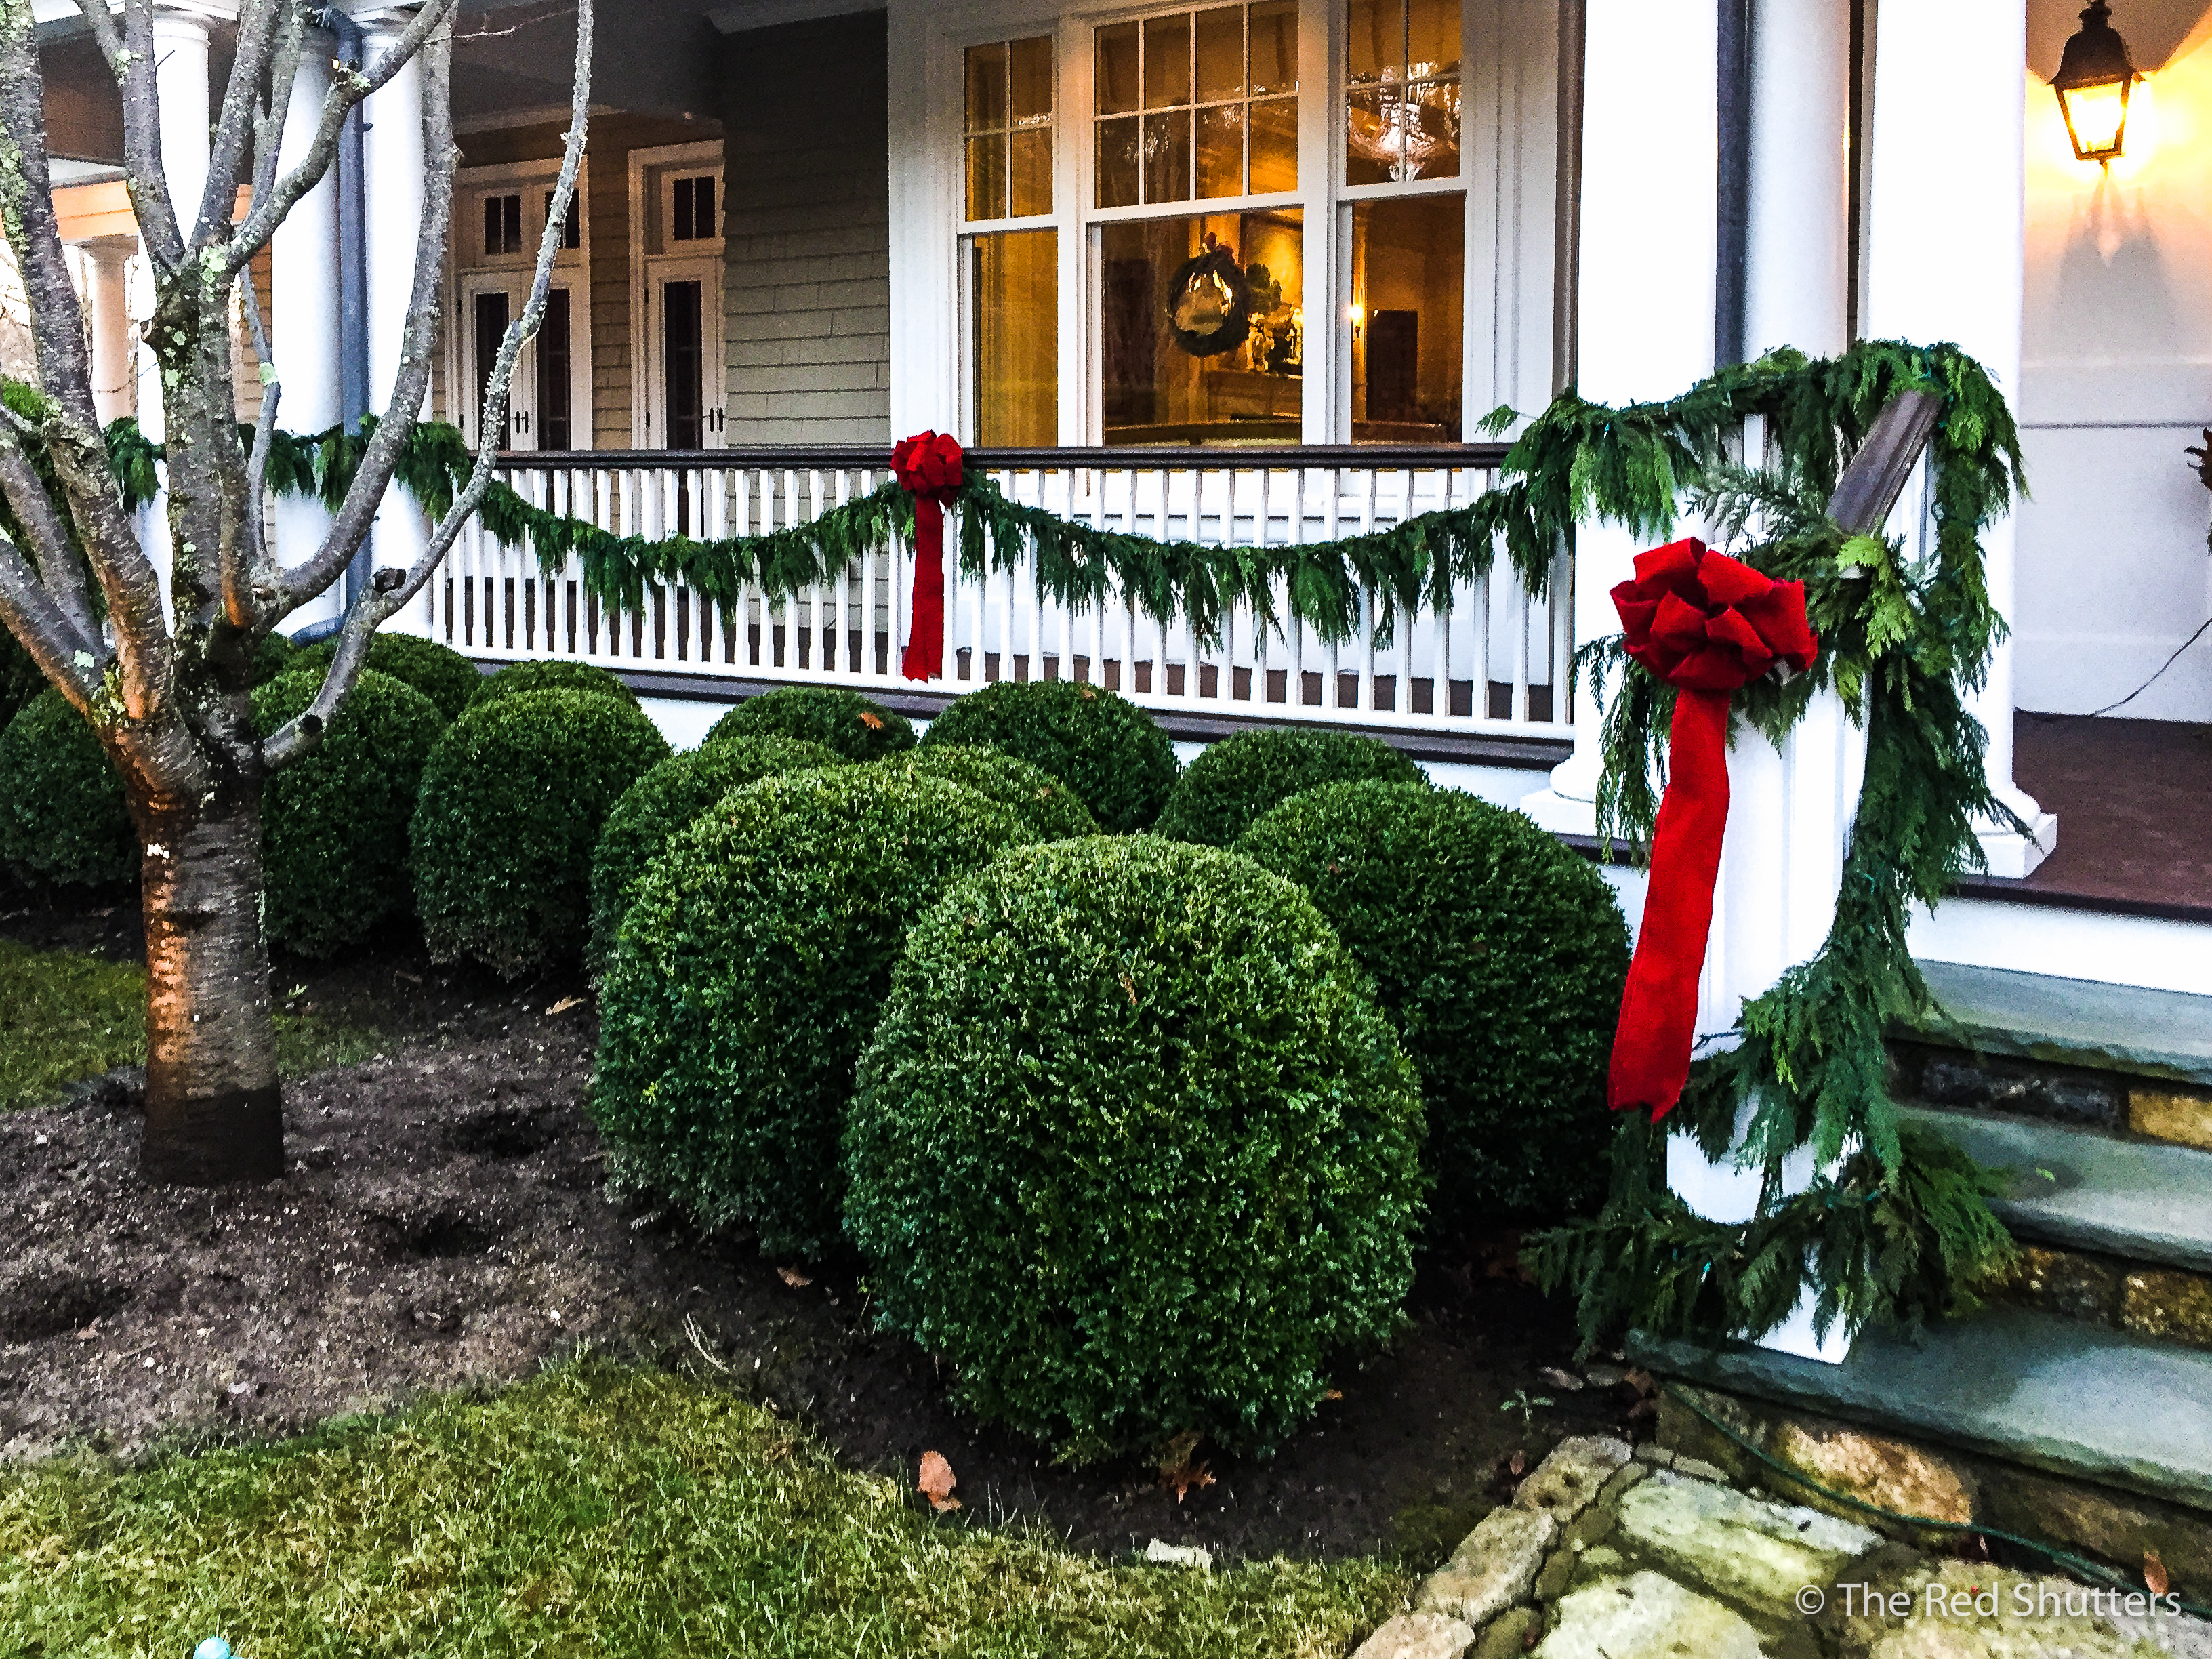 Greenwich Holiday House Tour